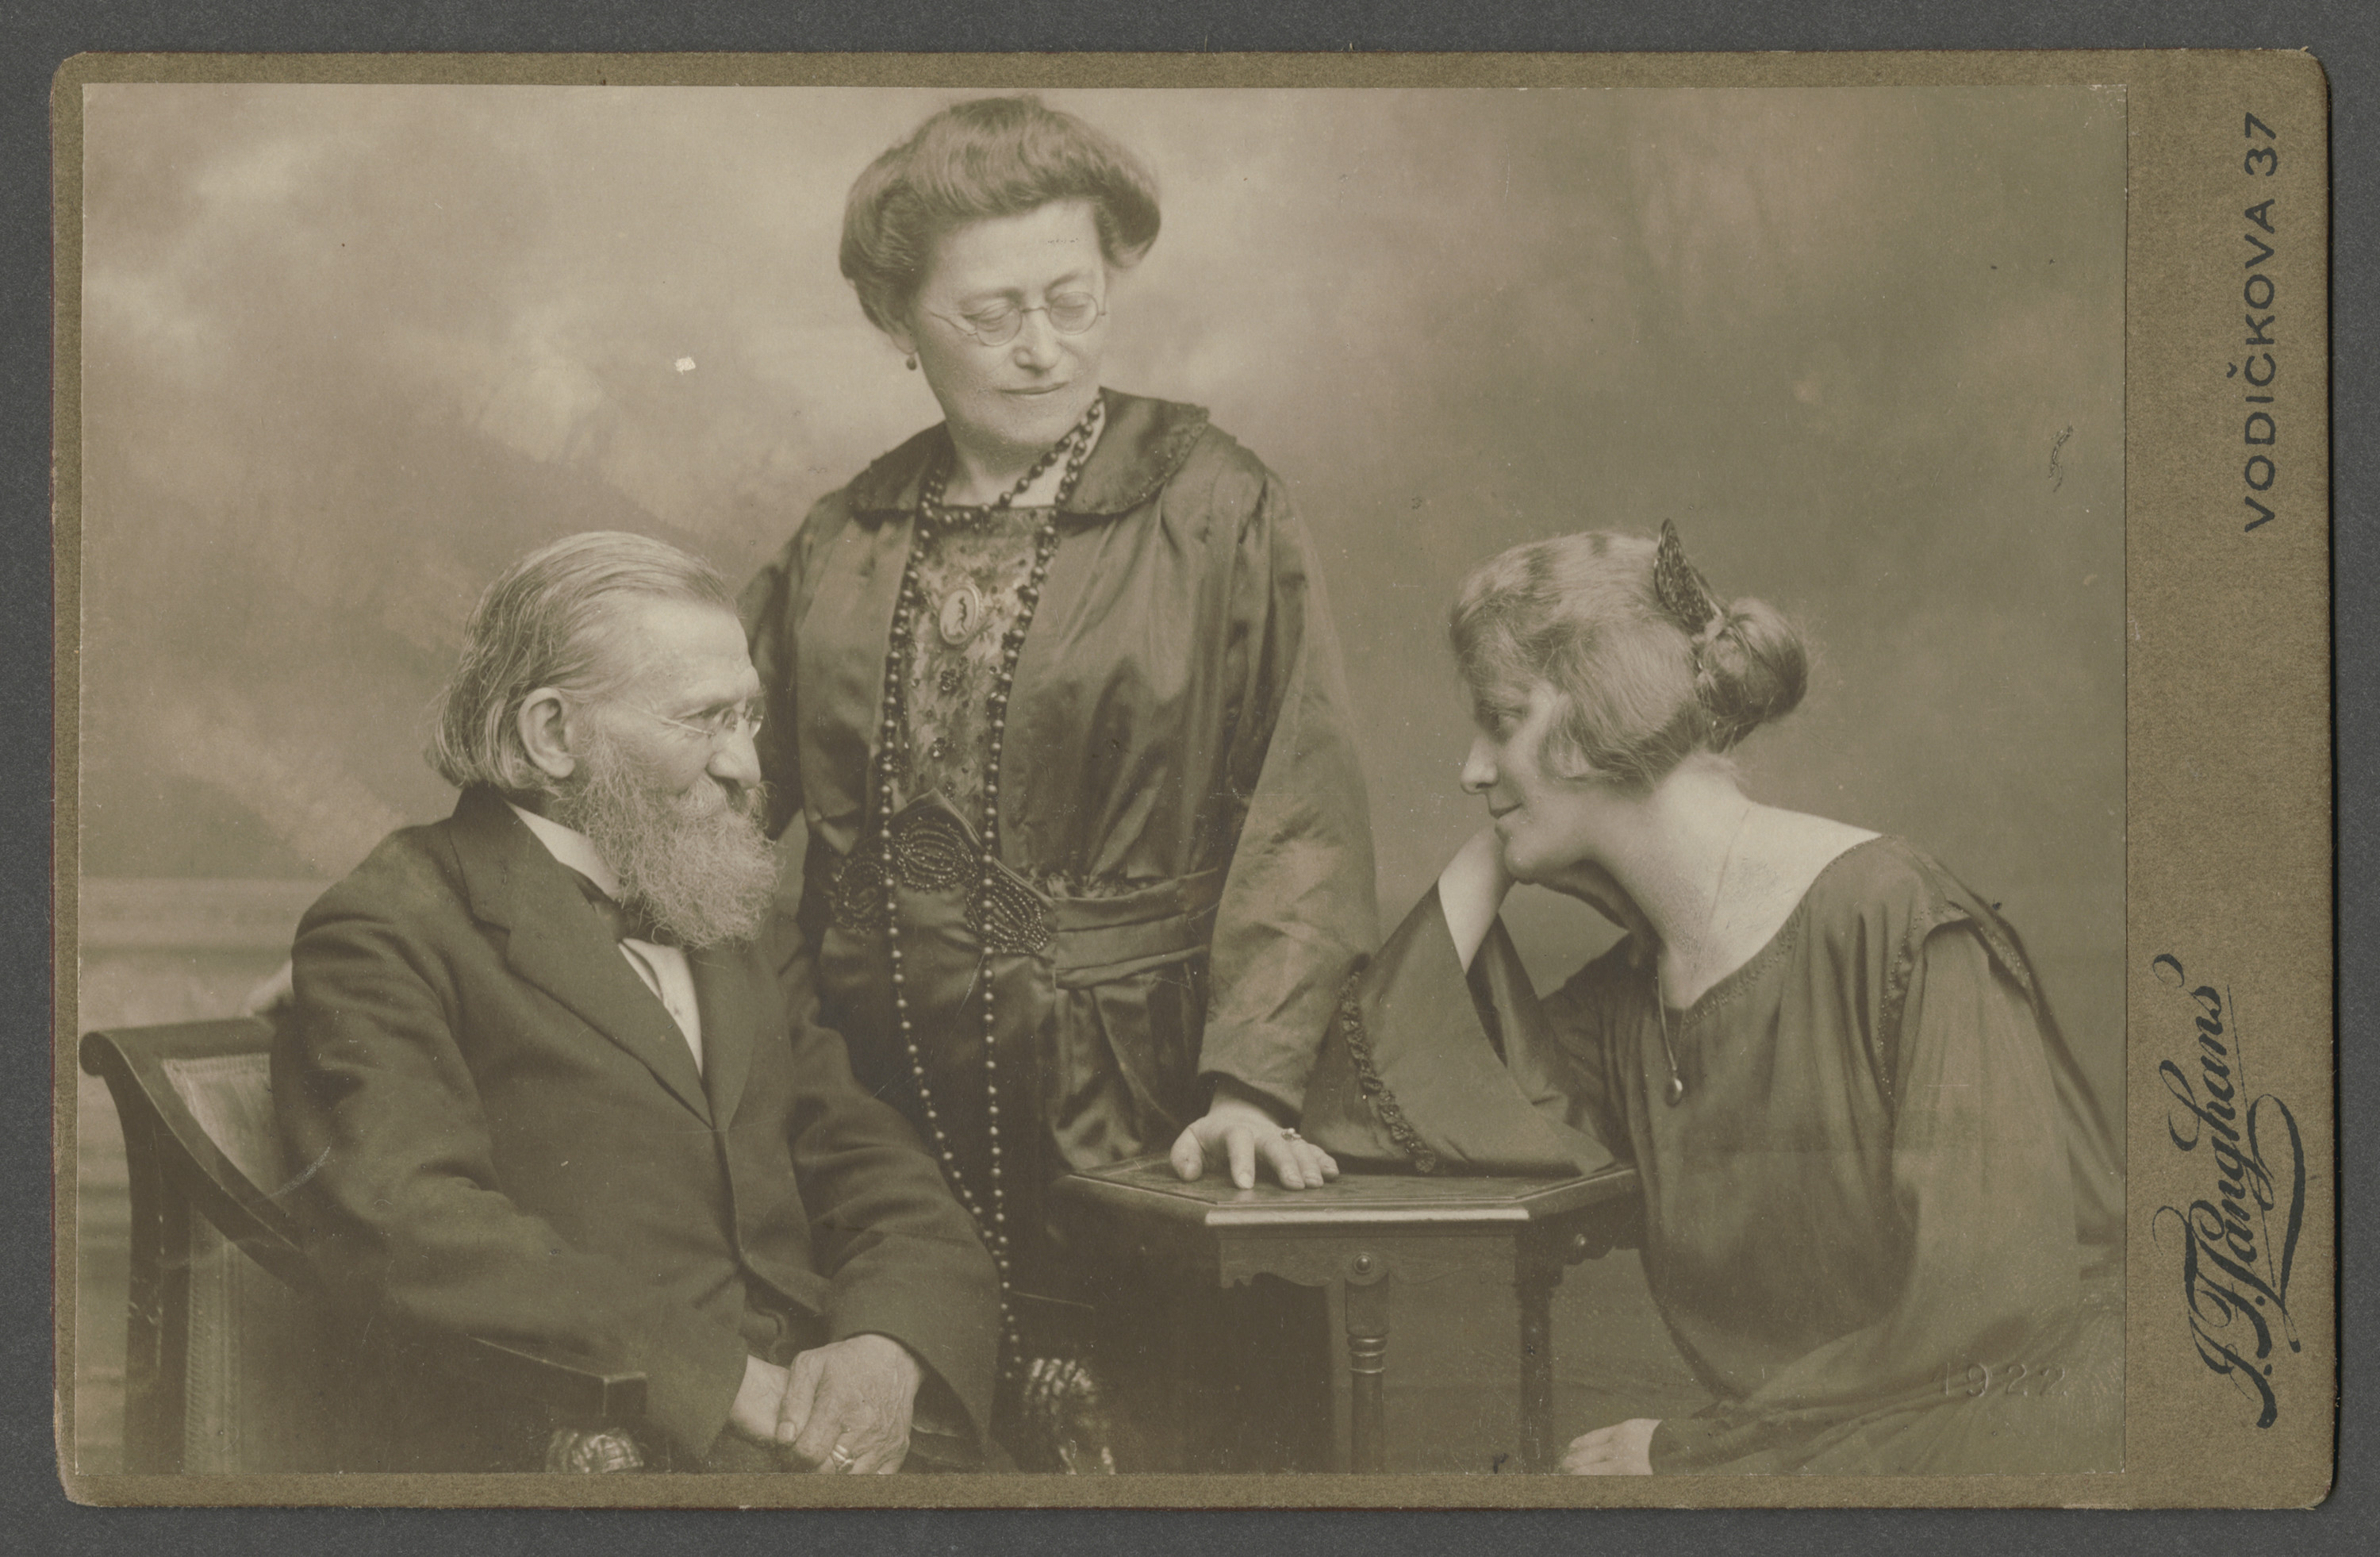 Portrait of  Czech Jewish family.  Pictured are parents Bernhard and Rosa Ohs, with their daughter Louise.